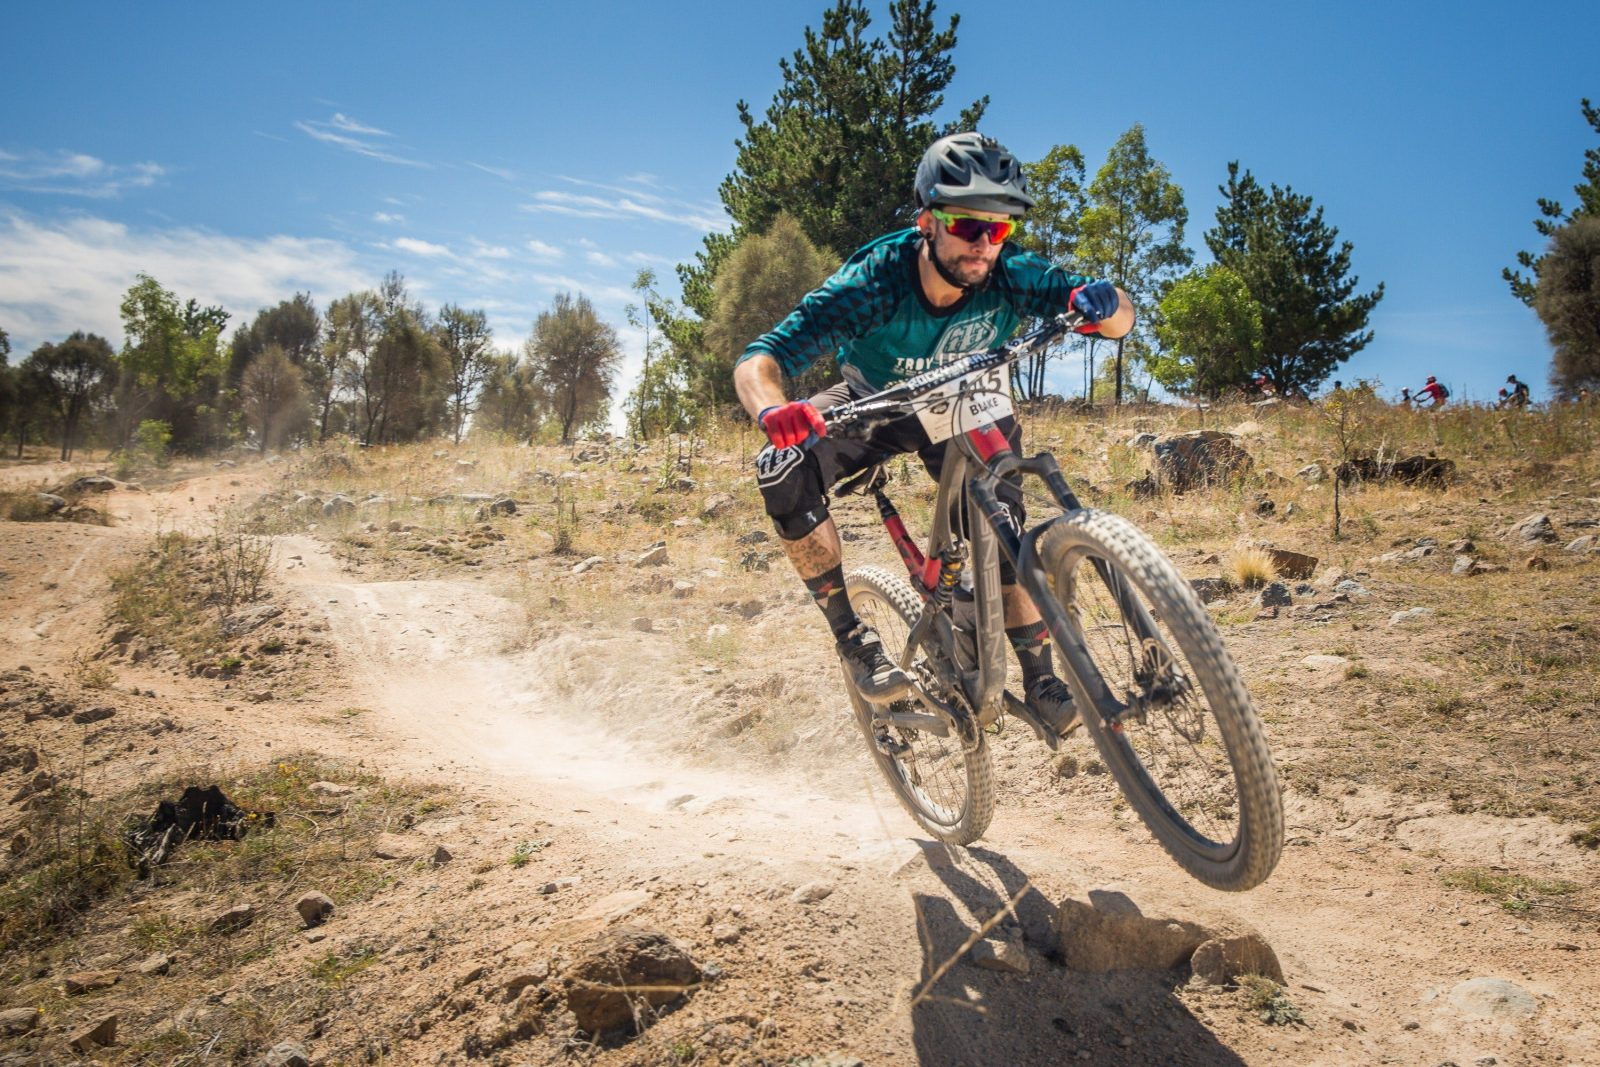 Fox Superflow enduro racing action at Stromlo Forest Park.